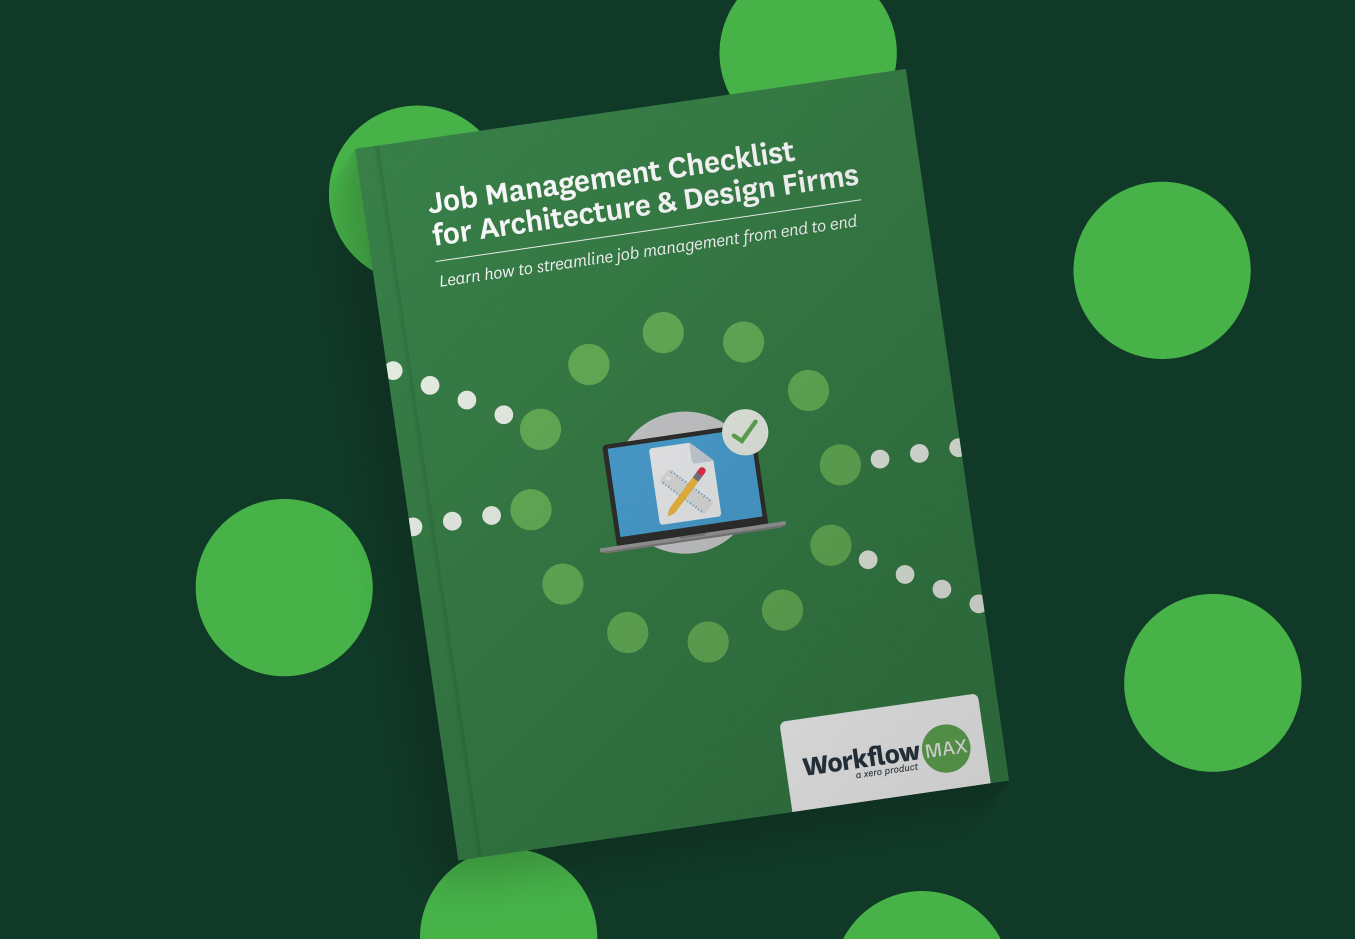 Free download: Job Management Checklist for Architect & Design Firms